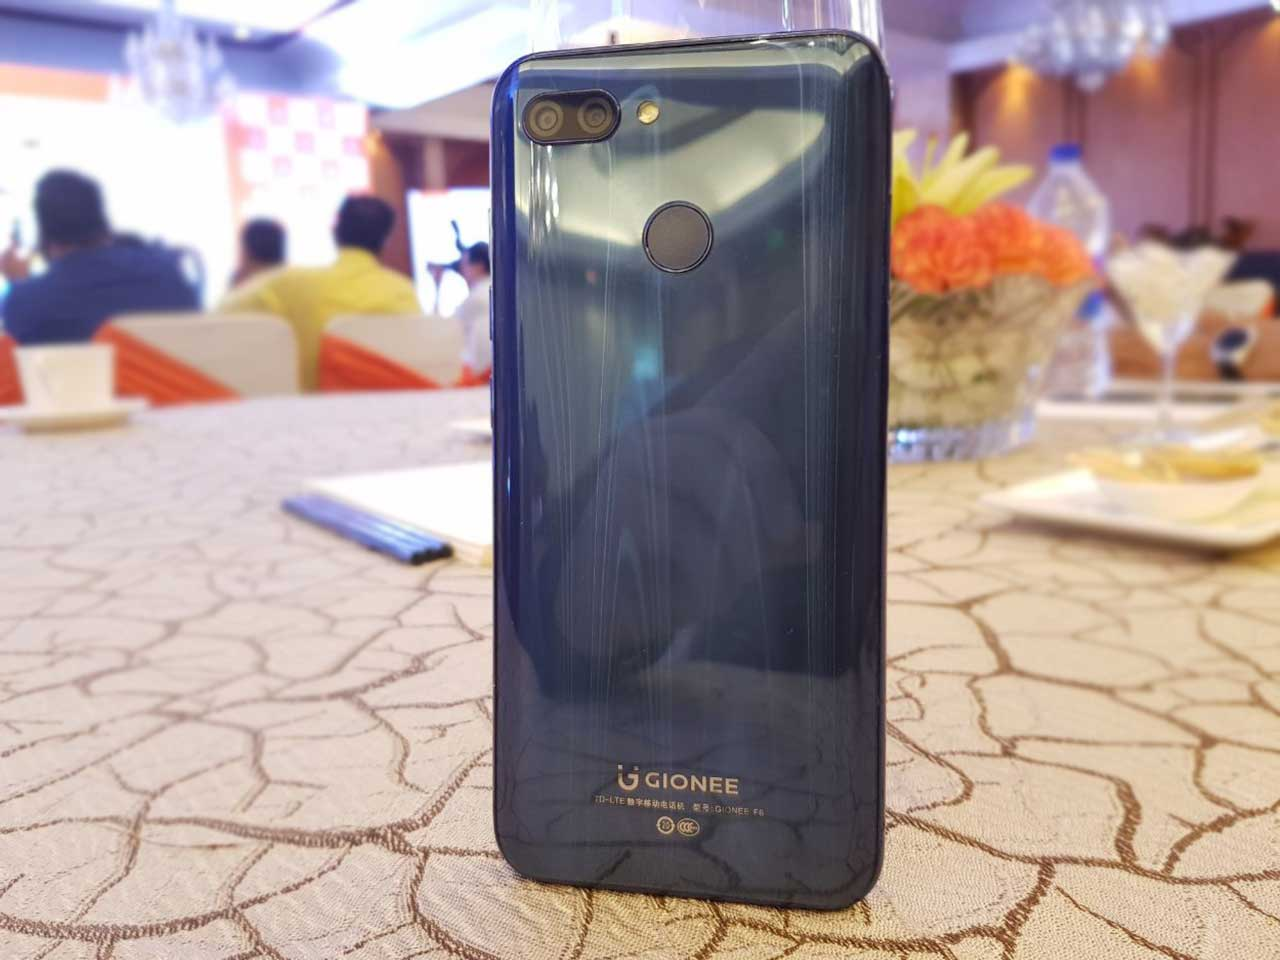 Gionee F205 and S11 Lite with Full View Display